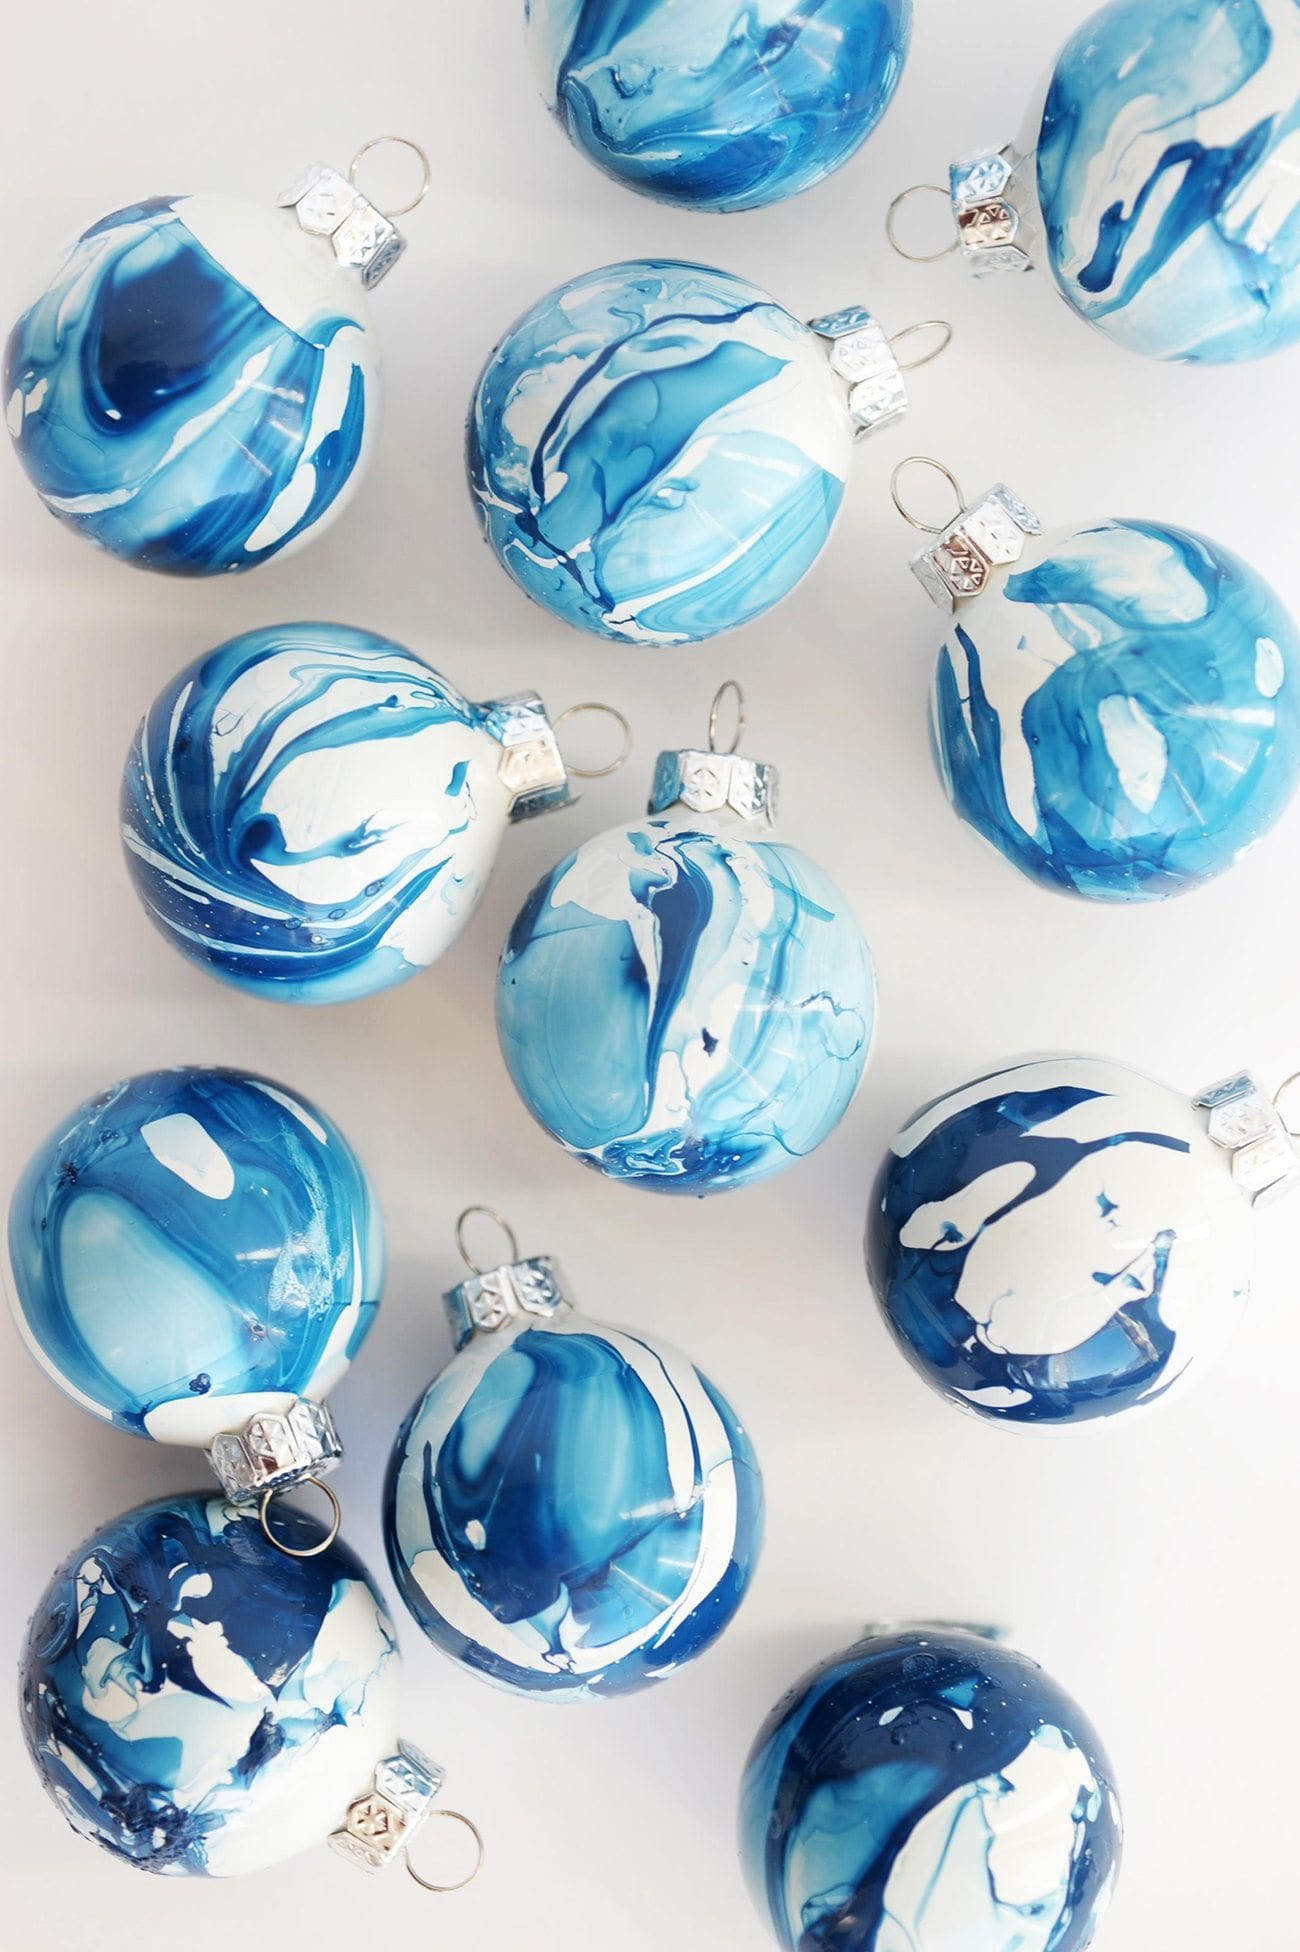 DIY Indigo Marbled Ornaments | Easy glass ornament craft ideas from @cydconverse